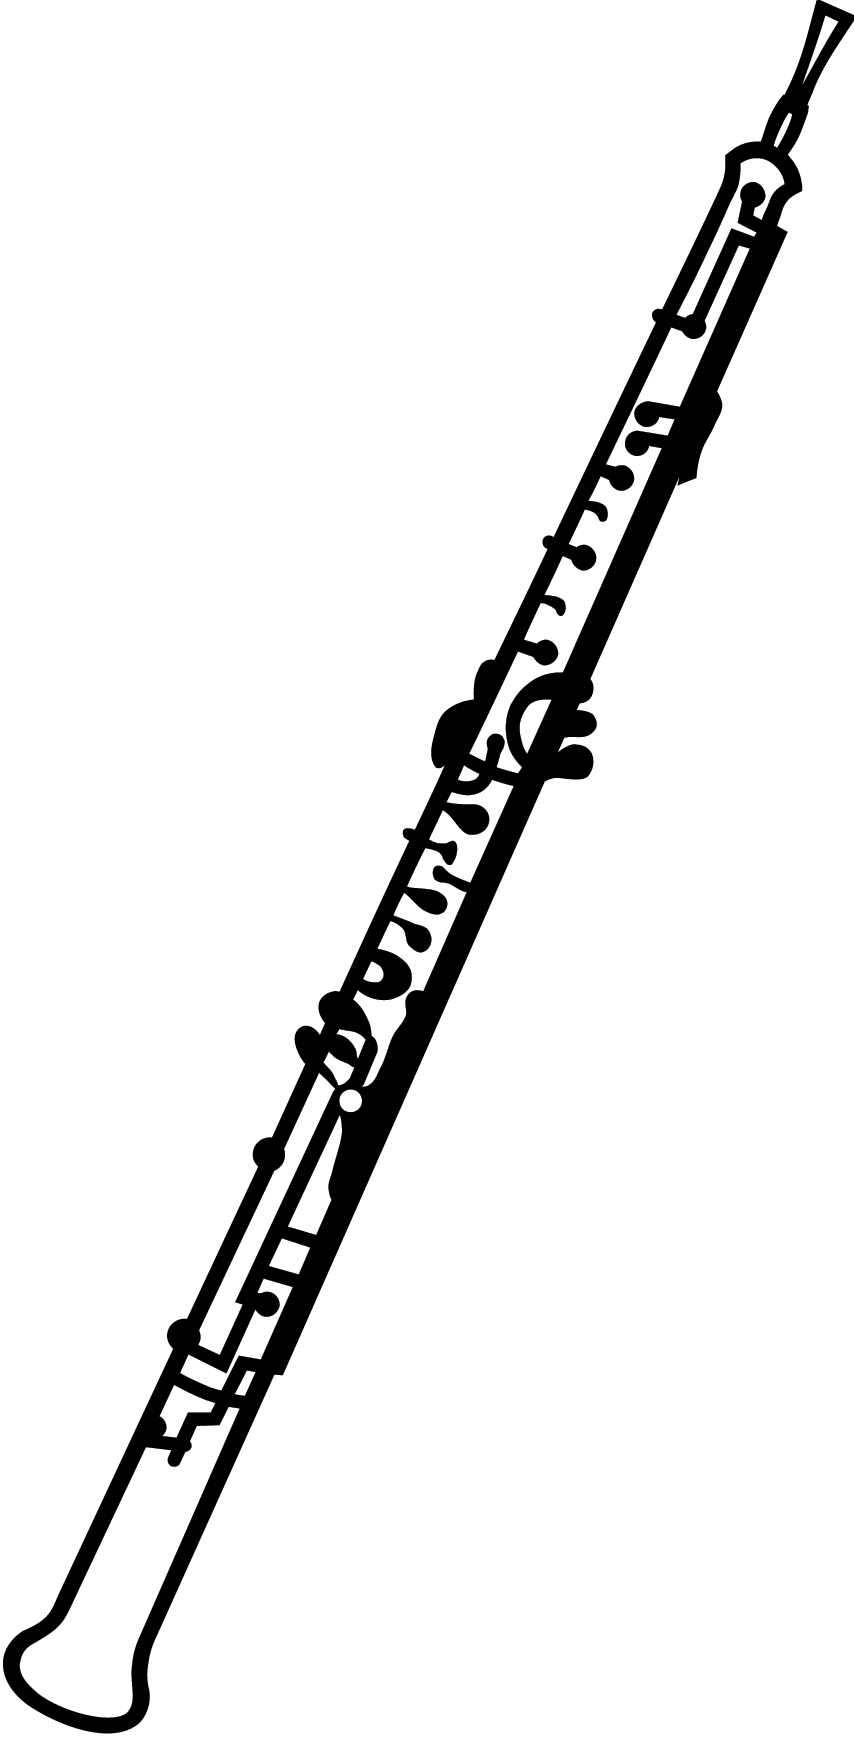 Oboe drawing line